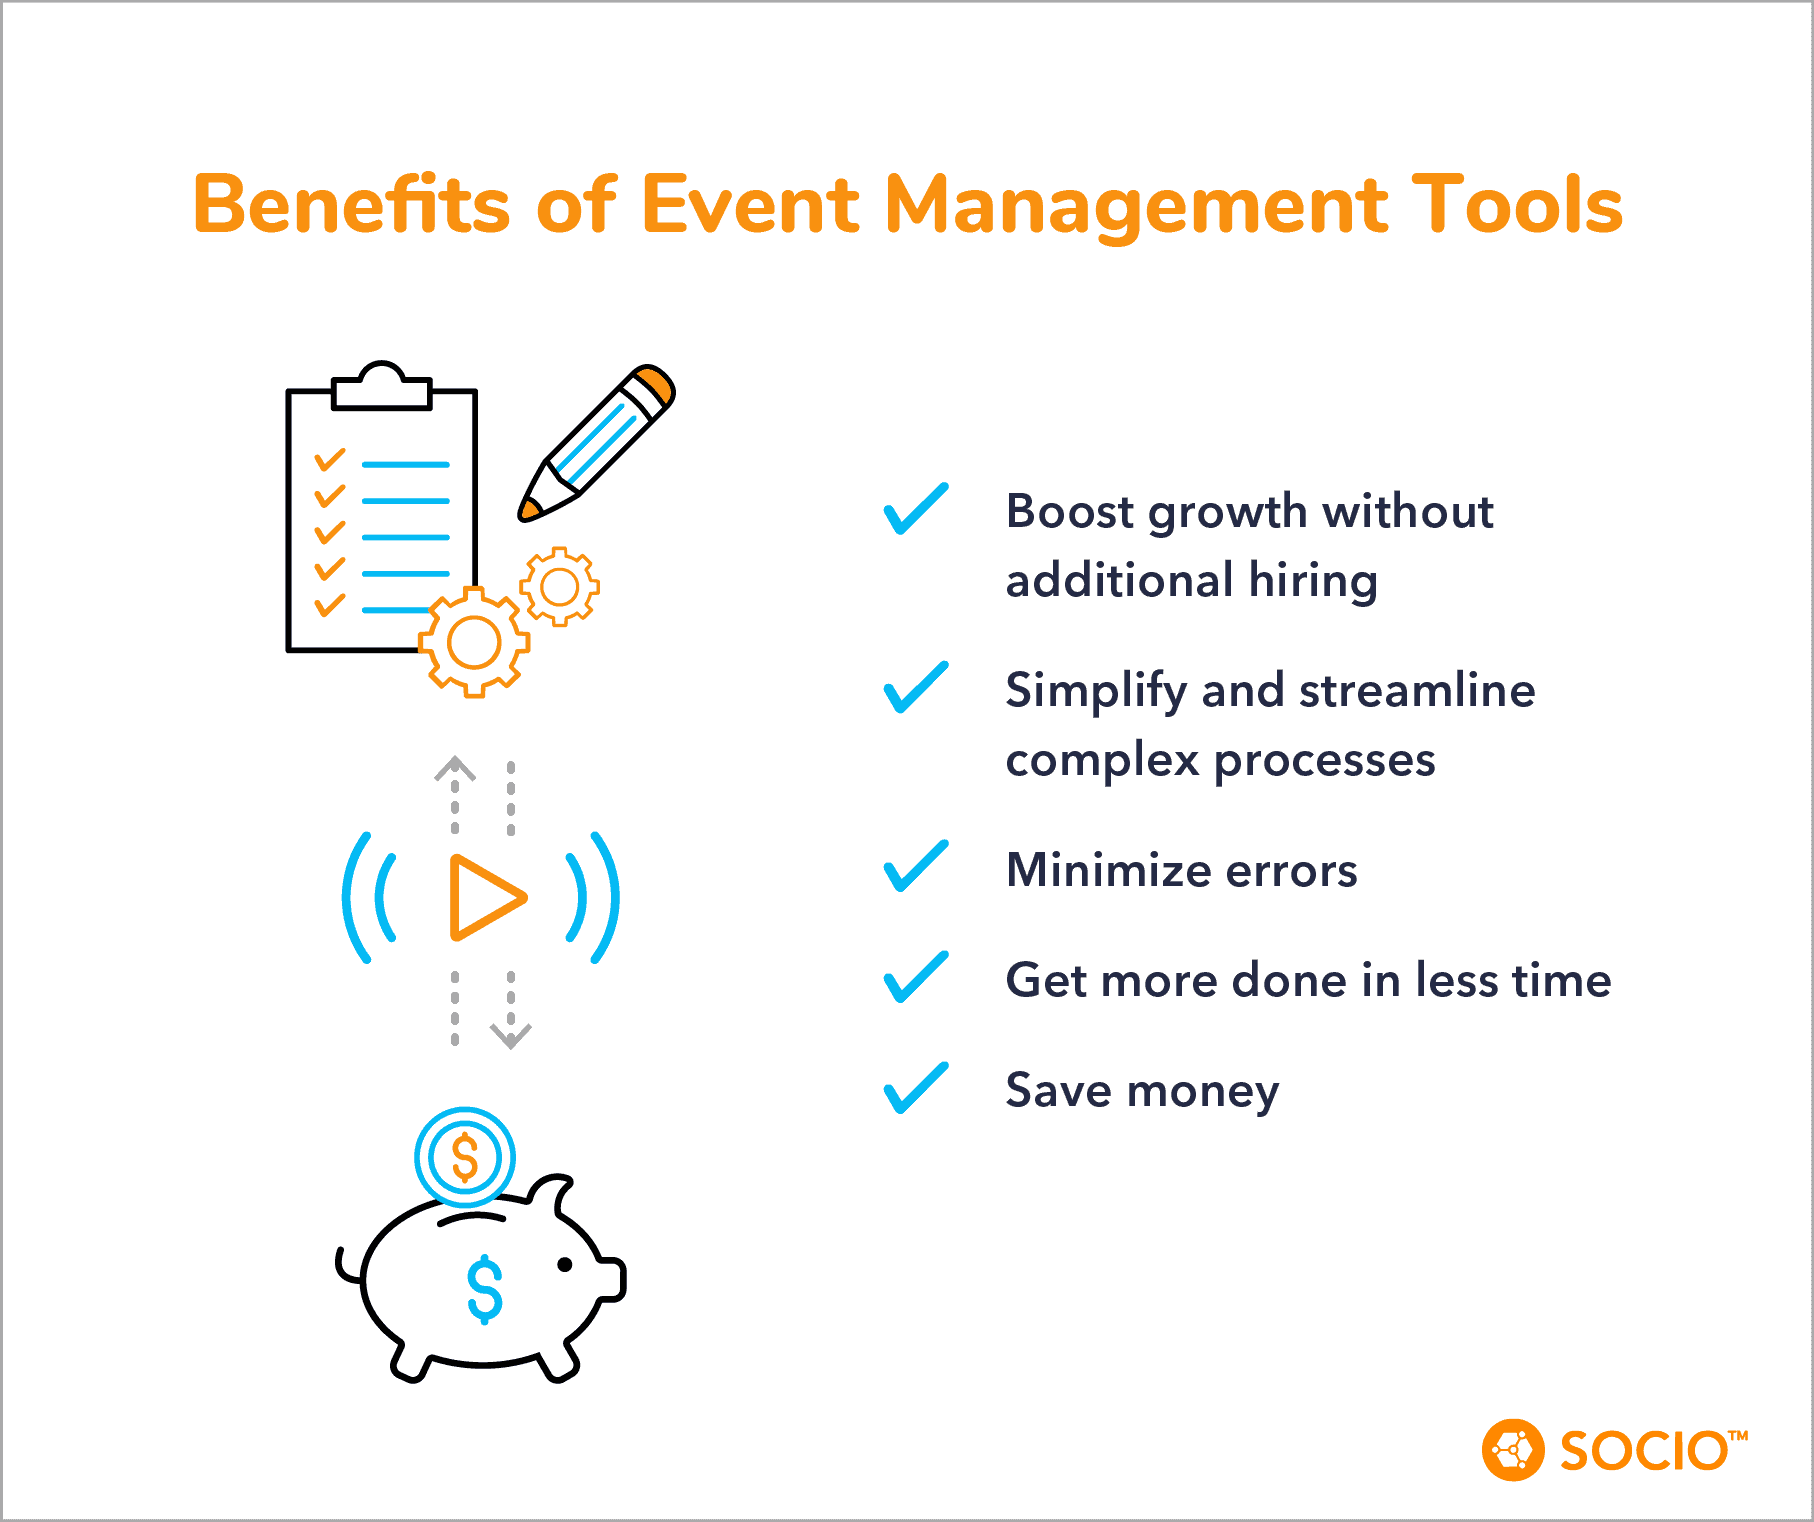 The Benefits of Event Management Tools